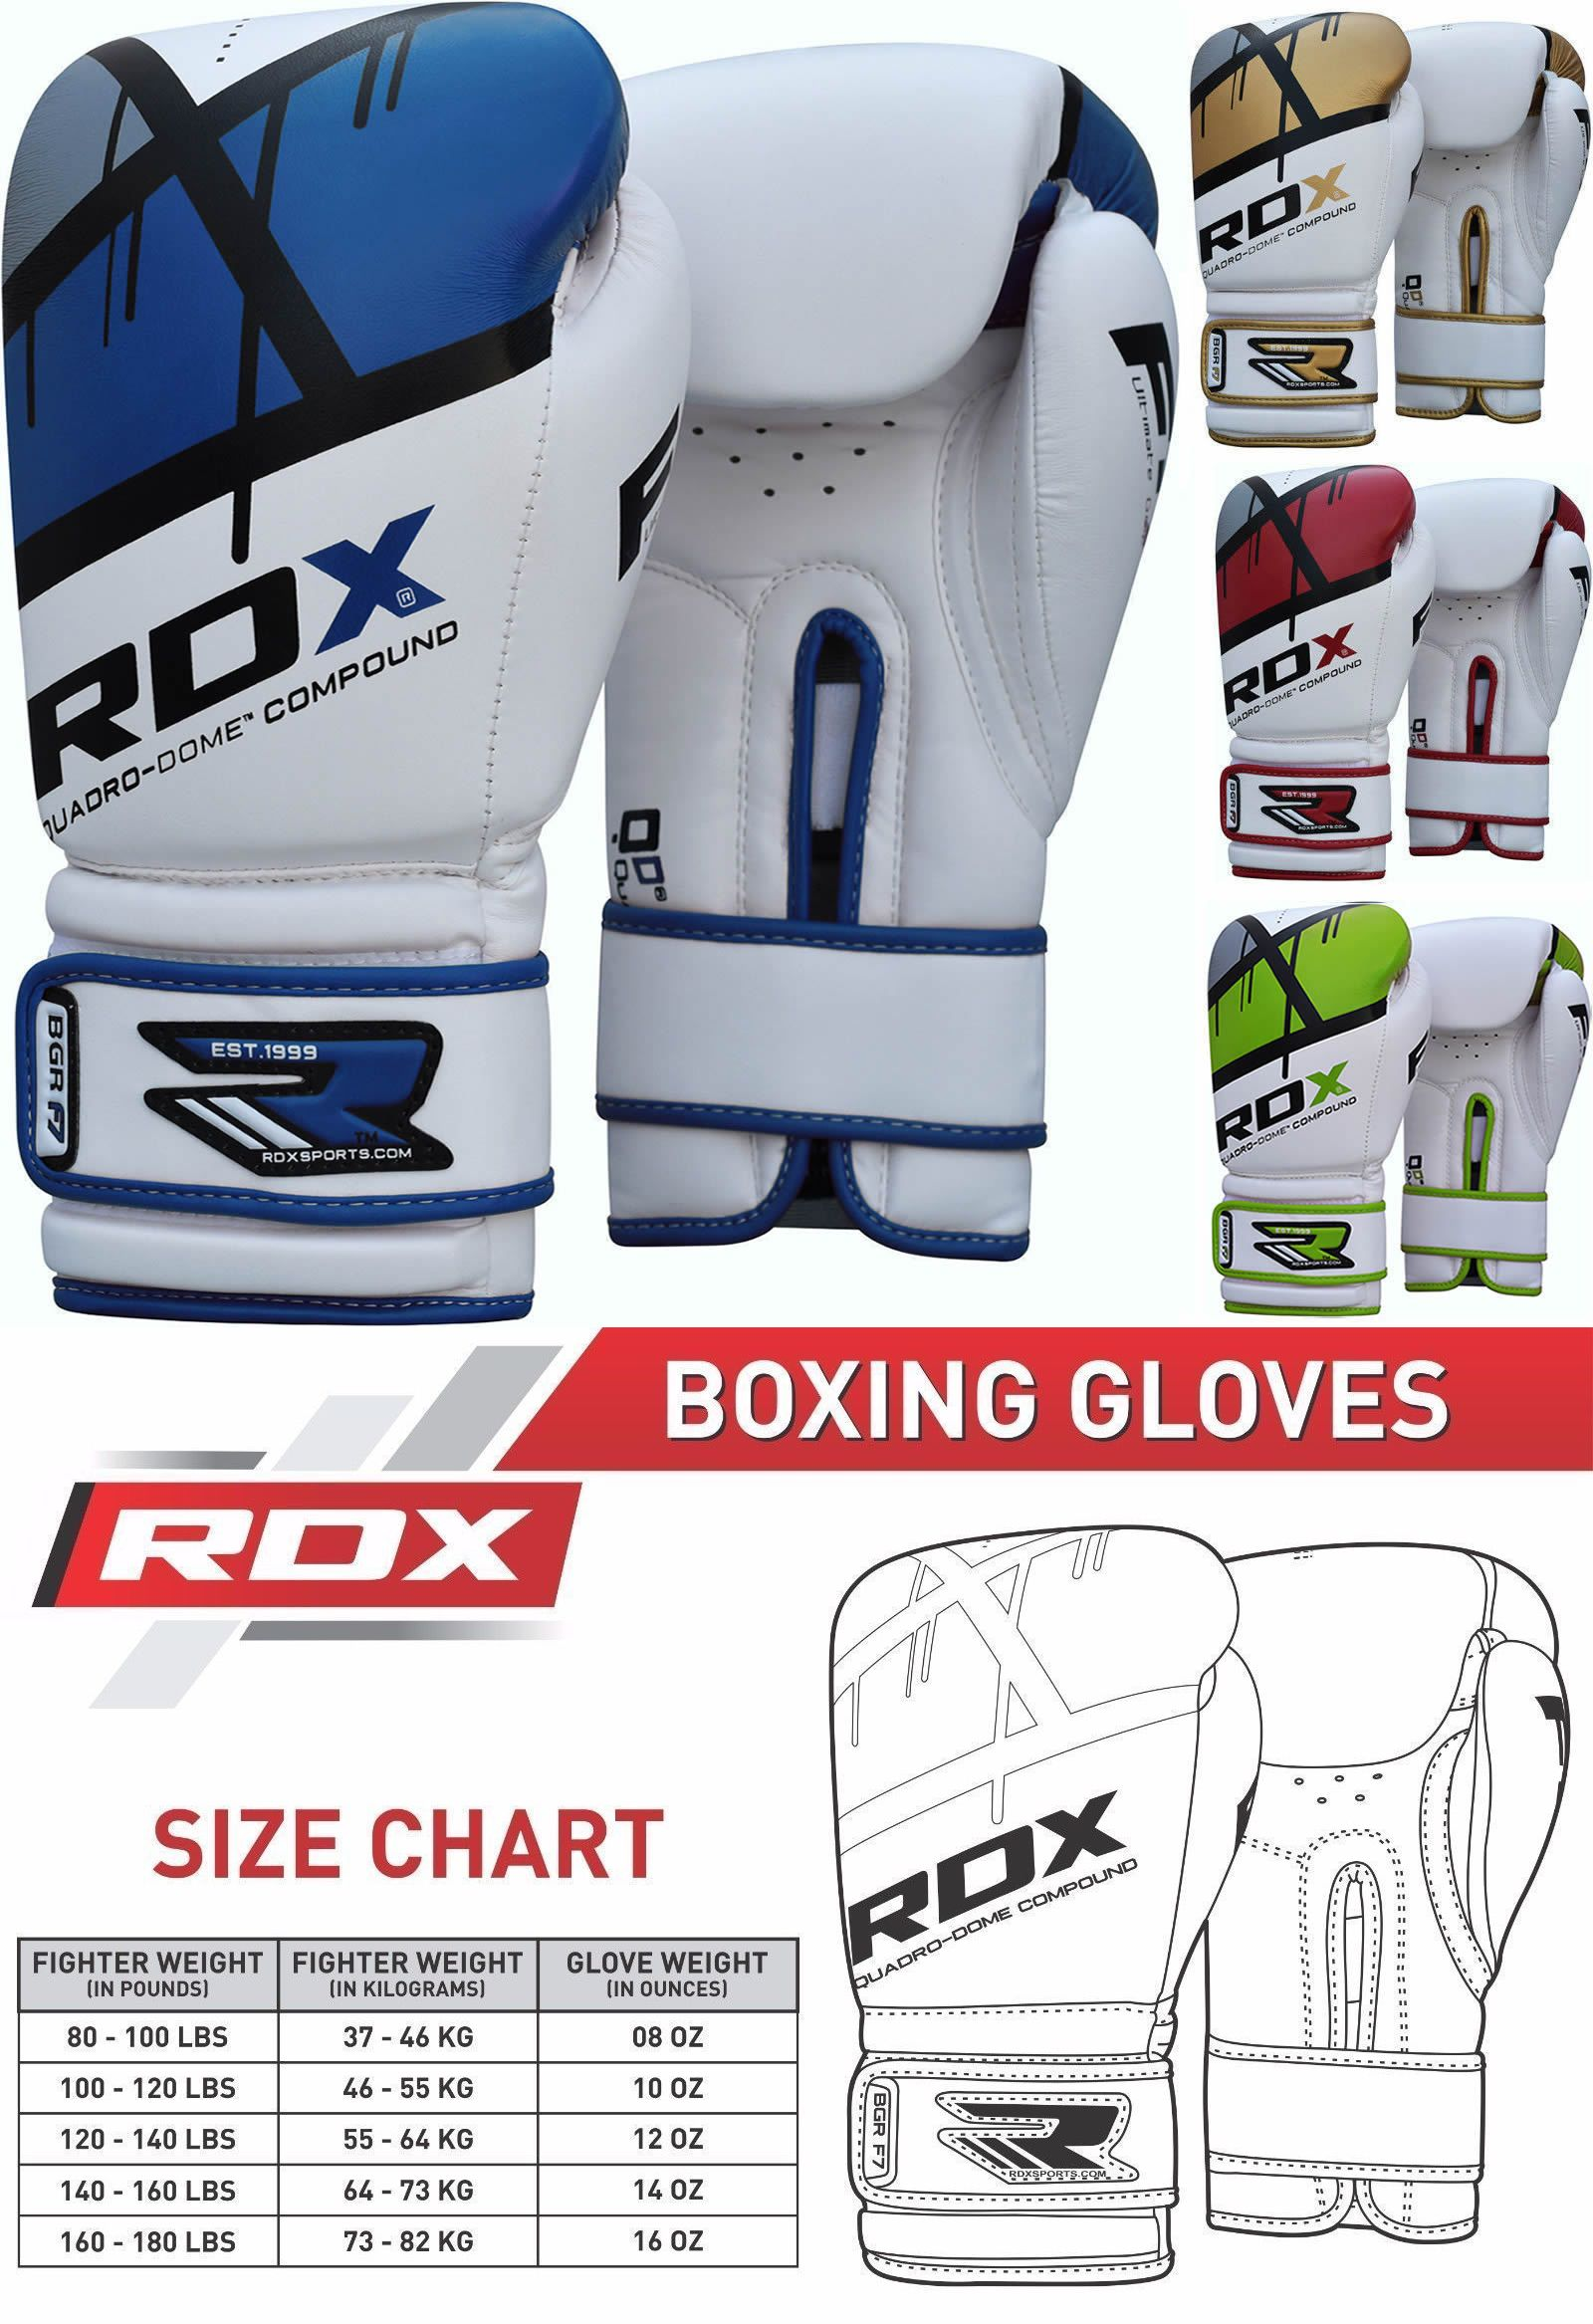 Gloves - Martial Arts 97042: Rdx Boxing Sparring Gloves Leather Punching Bag Training Muay Thai Fight Mma F7 -> BUY IT NOW ONLY: $43.49 on eBay!